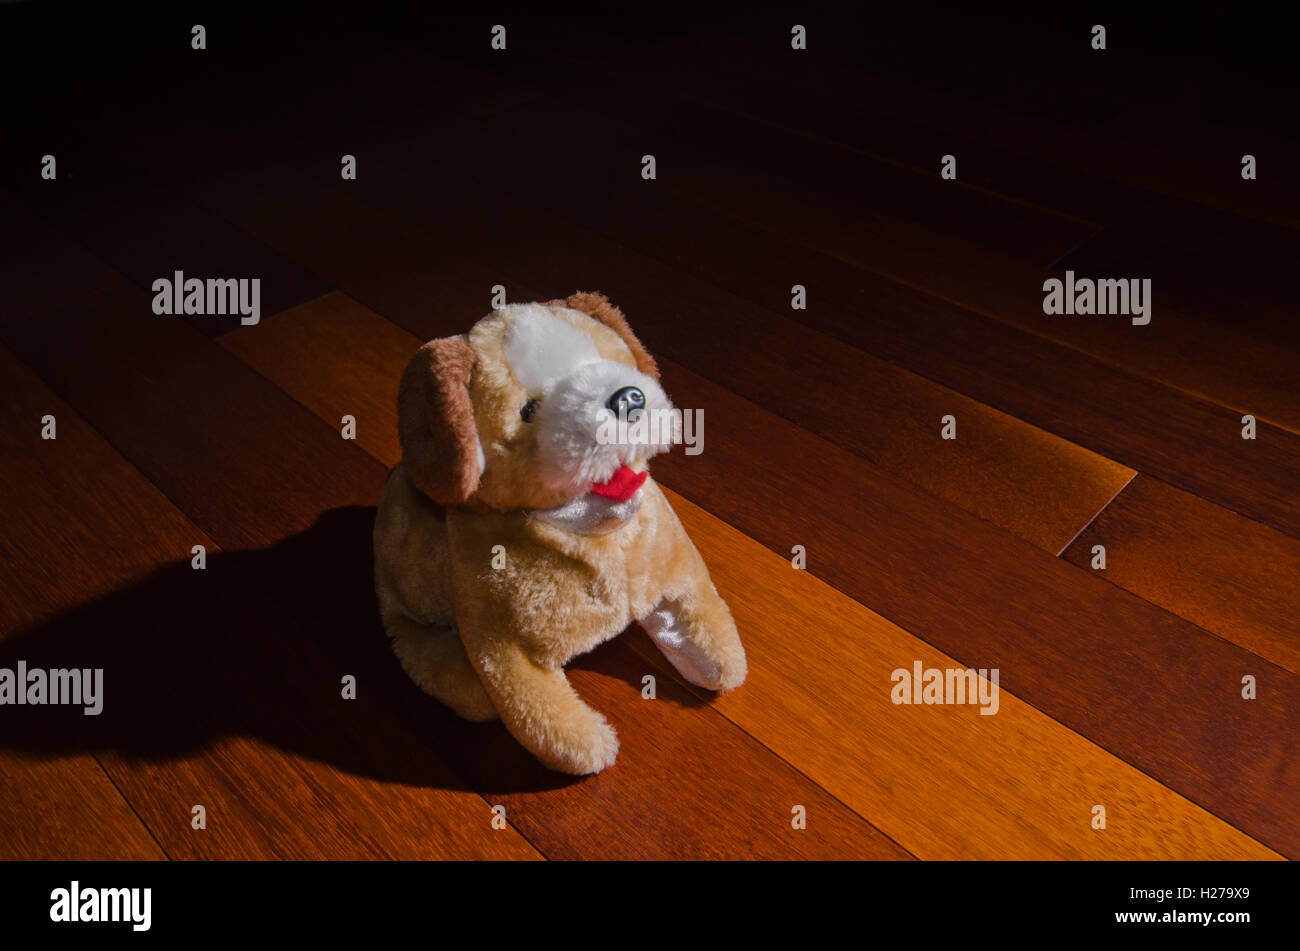 Plush dog doll toy sitting obediently in front of spotlight - Stock Image